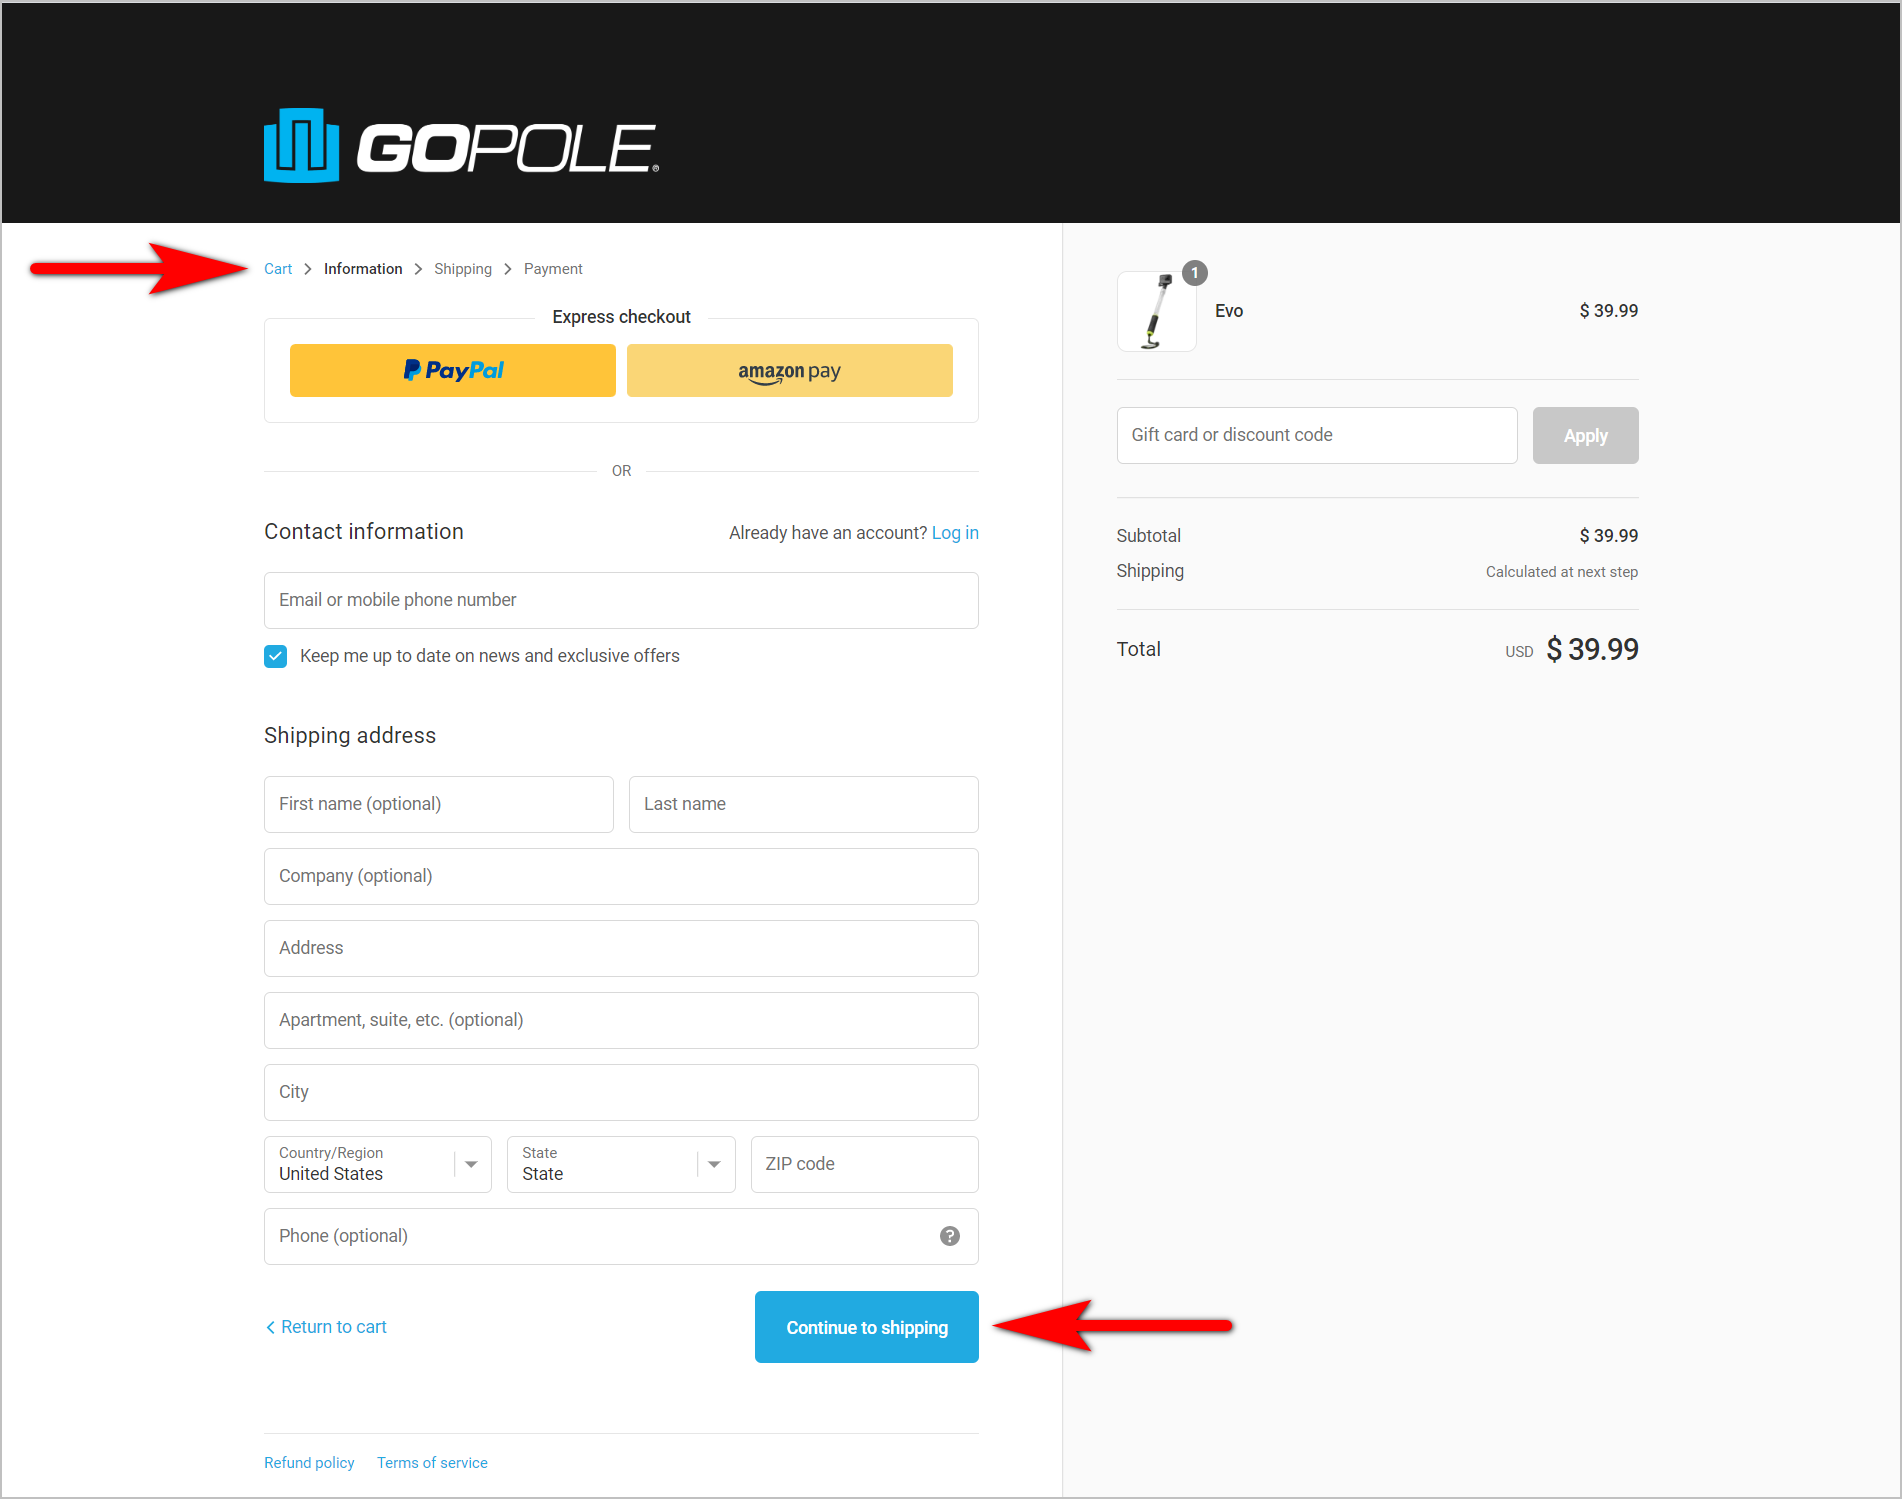 "ecommerce checkout best practices - setting user expectations example - gopole.com's checkout page with the checkout steps laid out in small text at the top and a ""continue to shipping"" cta button at the bottom of the page"